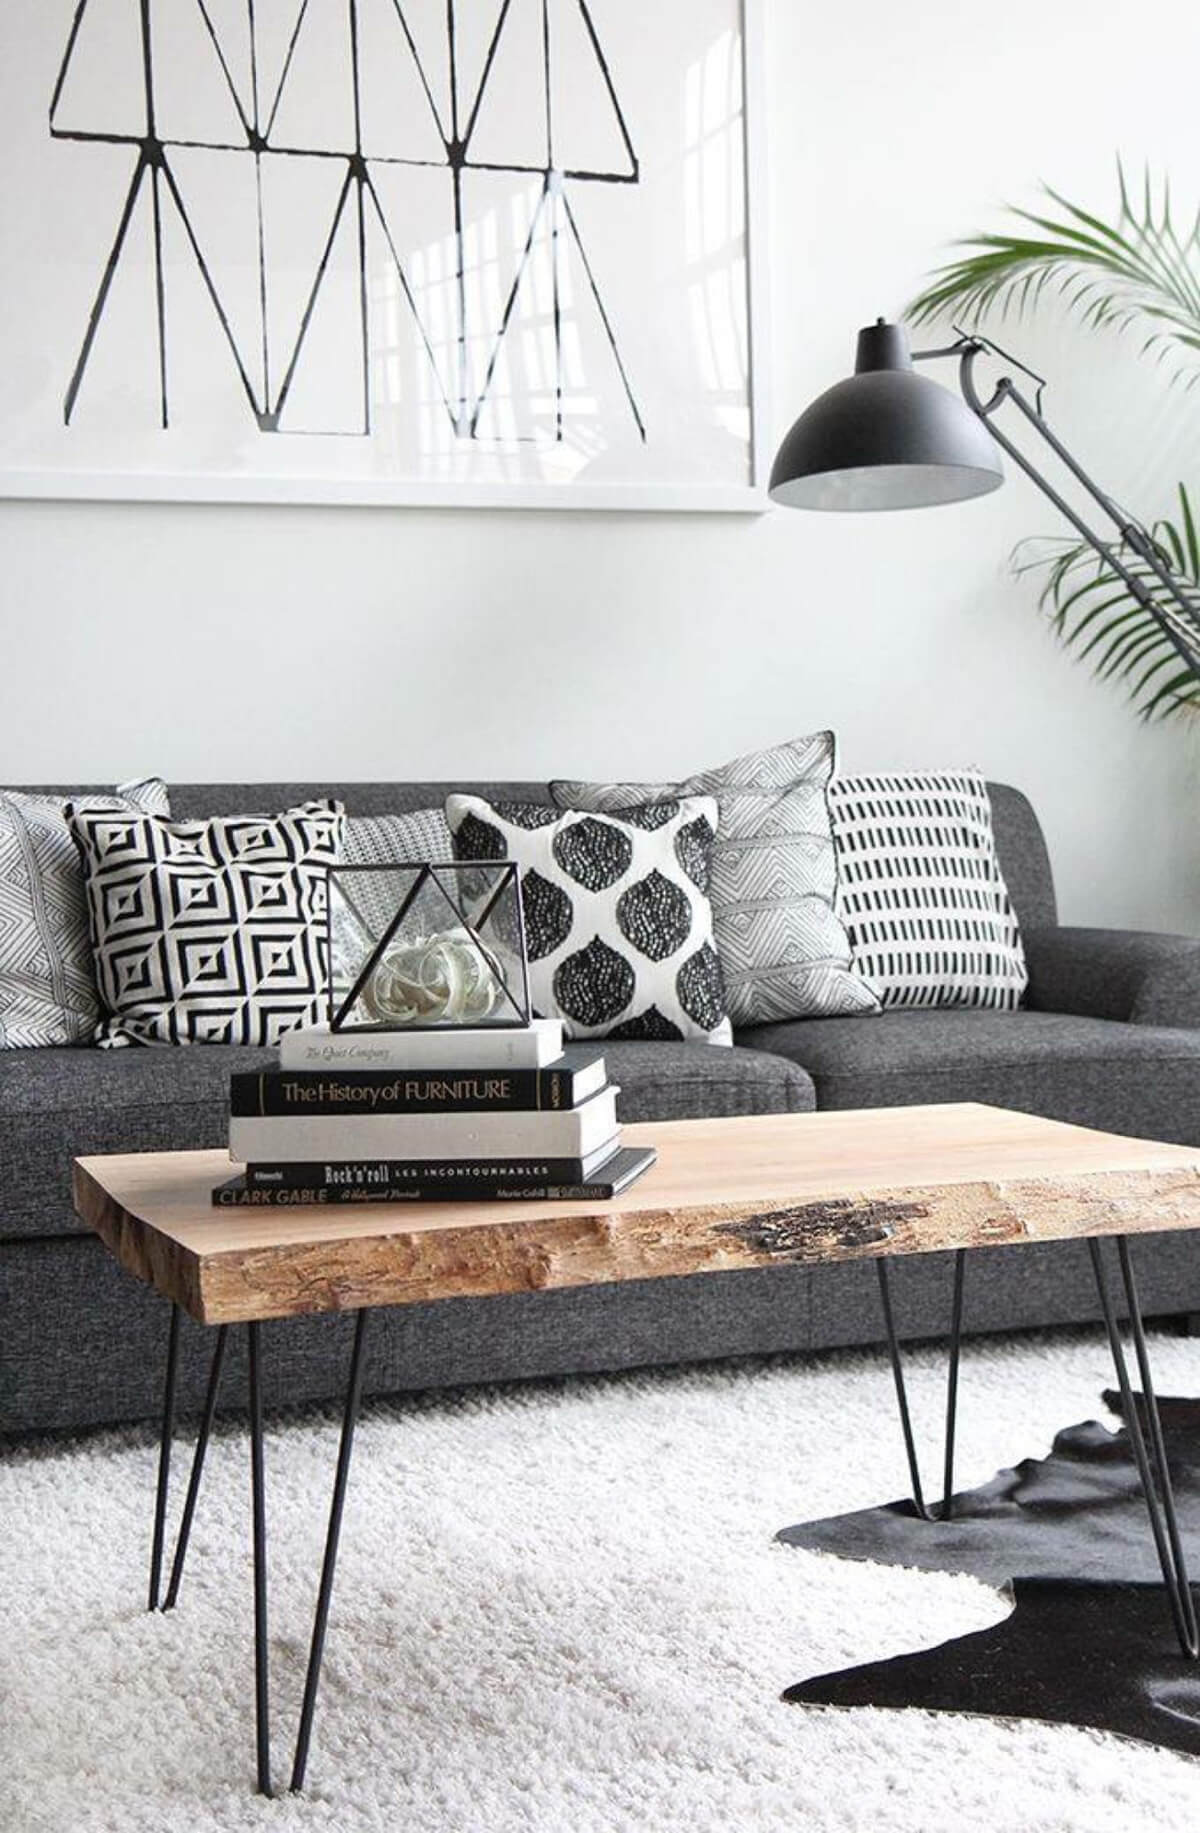 Wood-slab Statement Table and Black and White Book Display